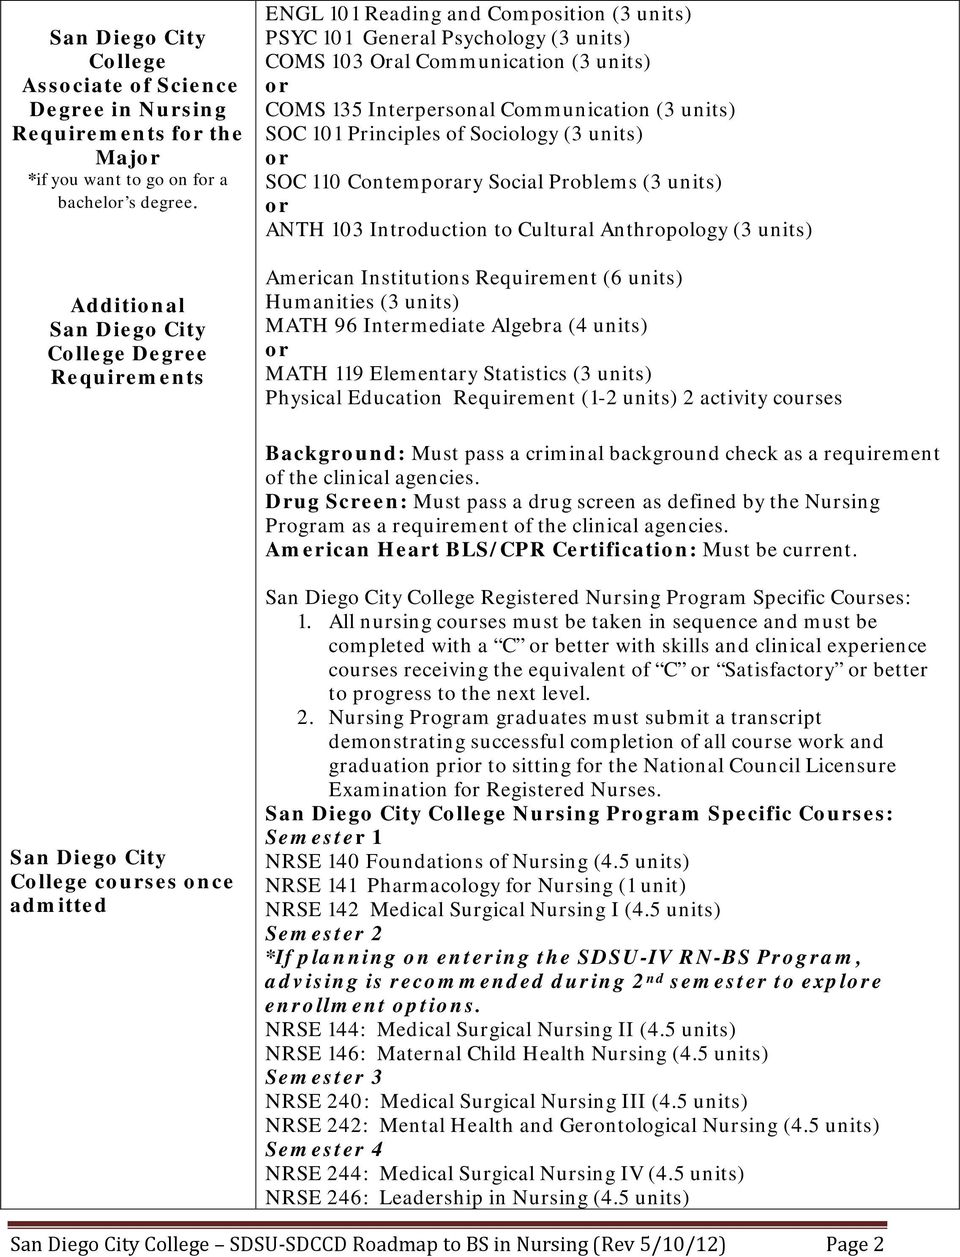 Roadmap To A Bachelor S Degree In Nursing In Partnership With San